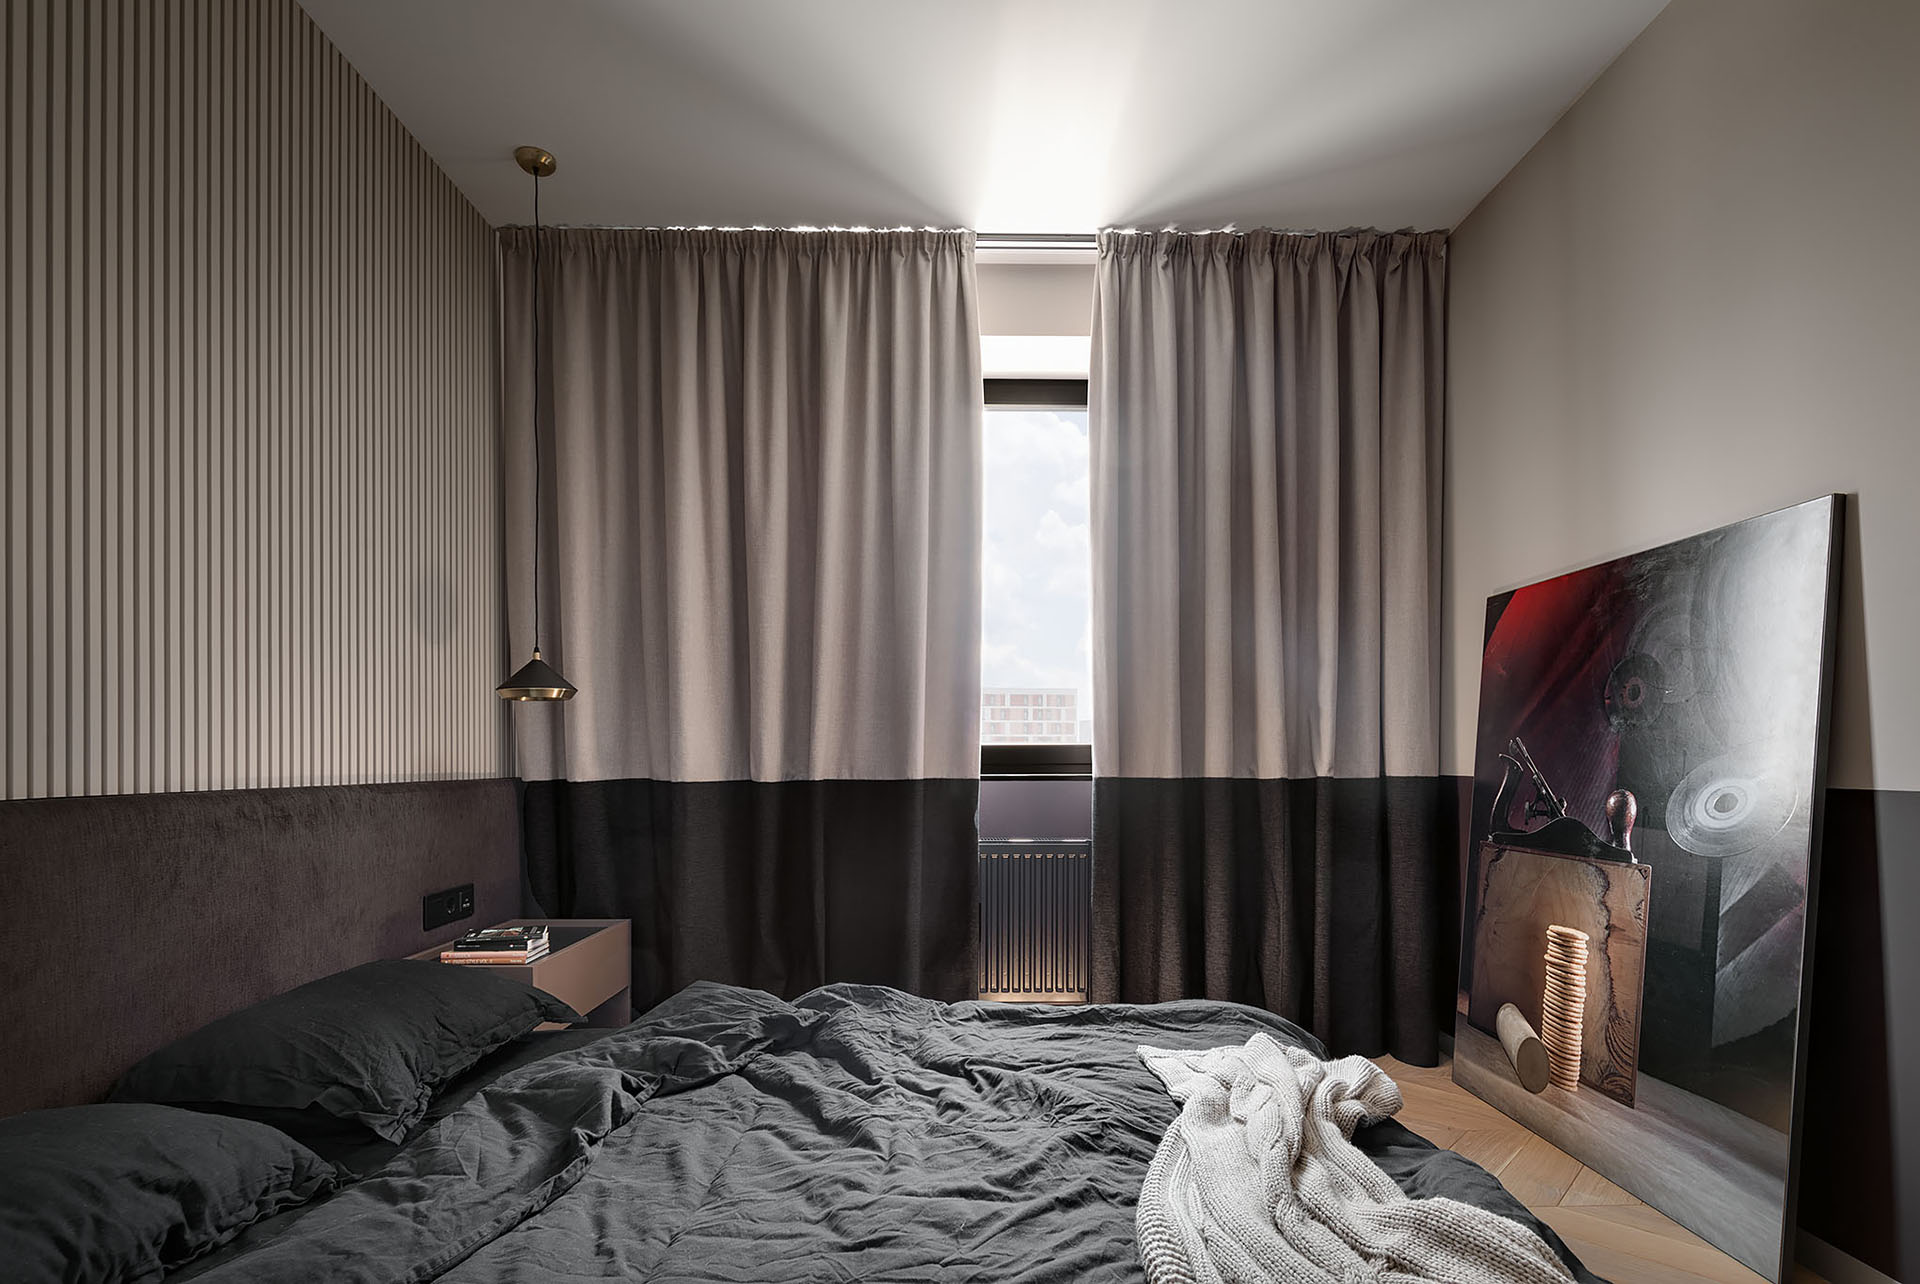 A two-tone bedroom includes different shades of chocolate and beige, a textured accent wall made from plaster, and two-tone curtains.